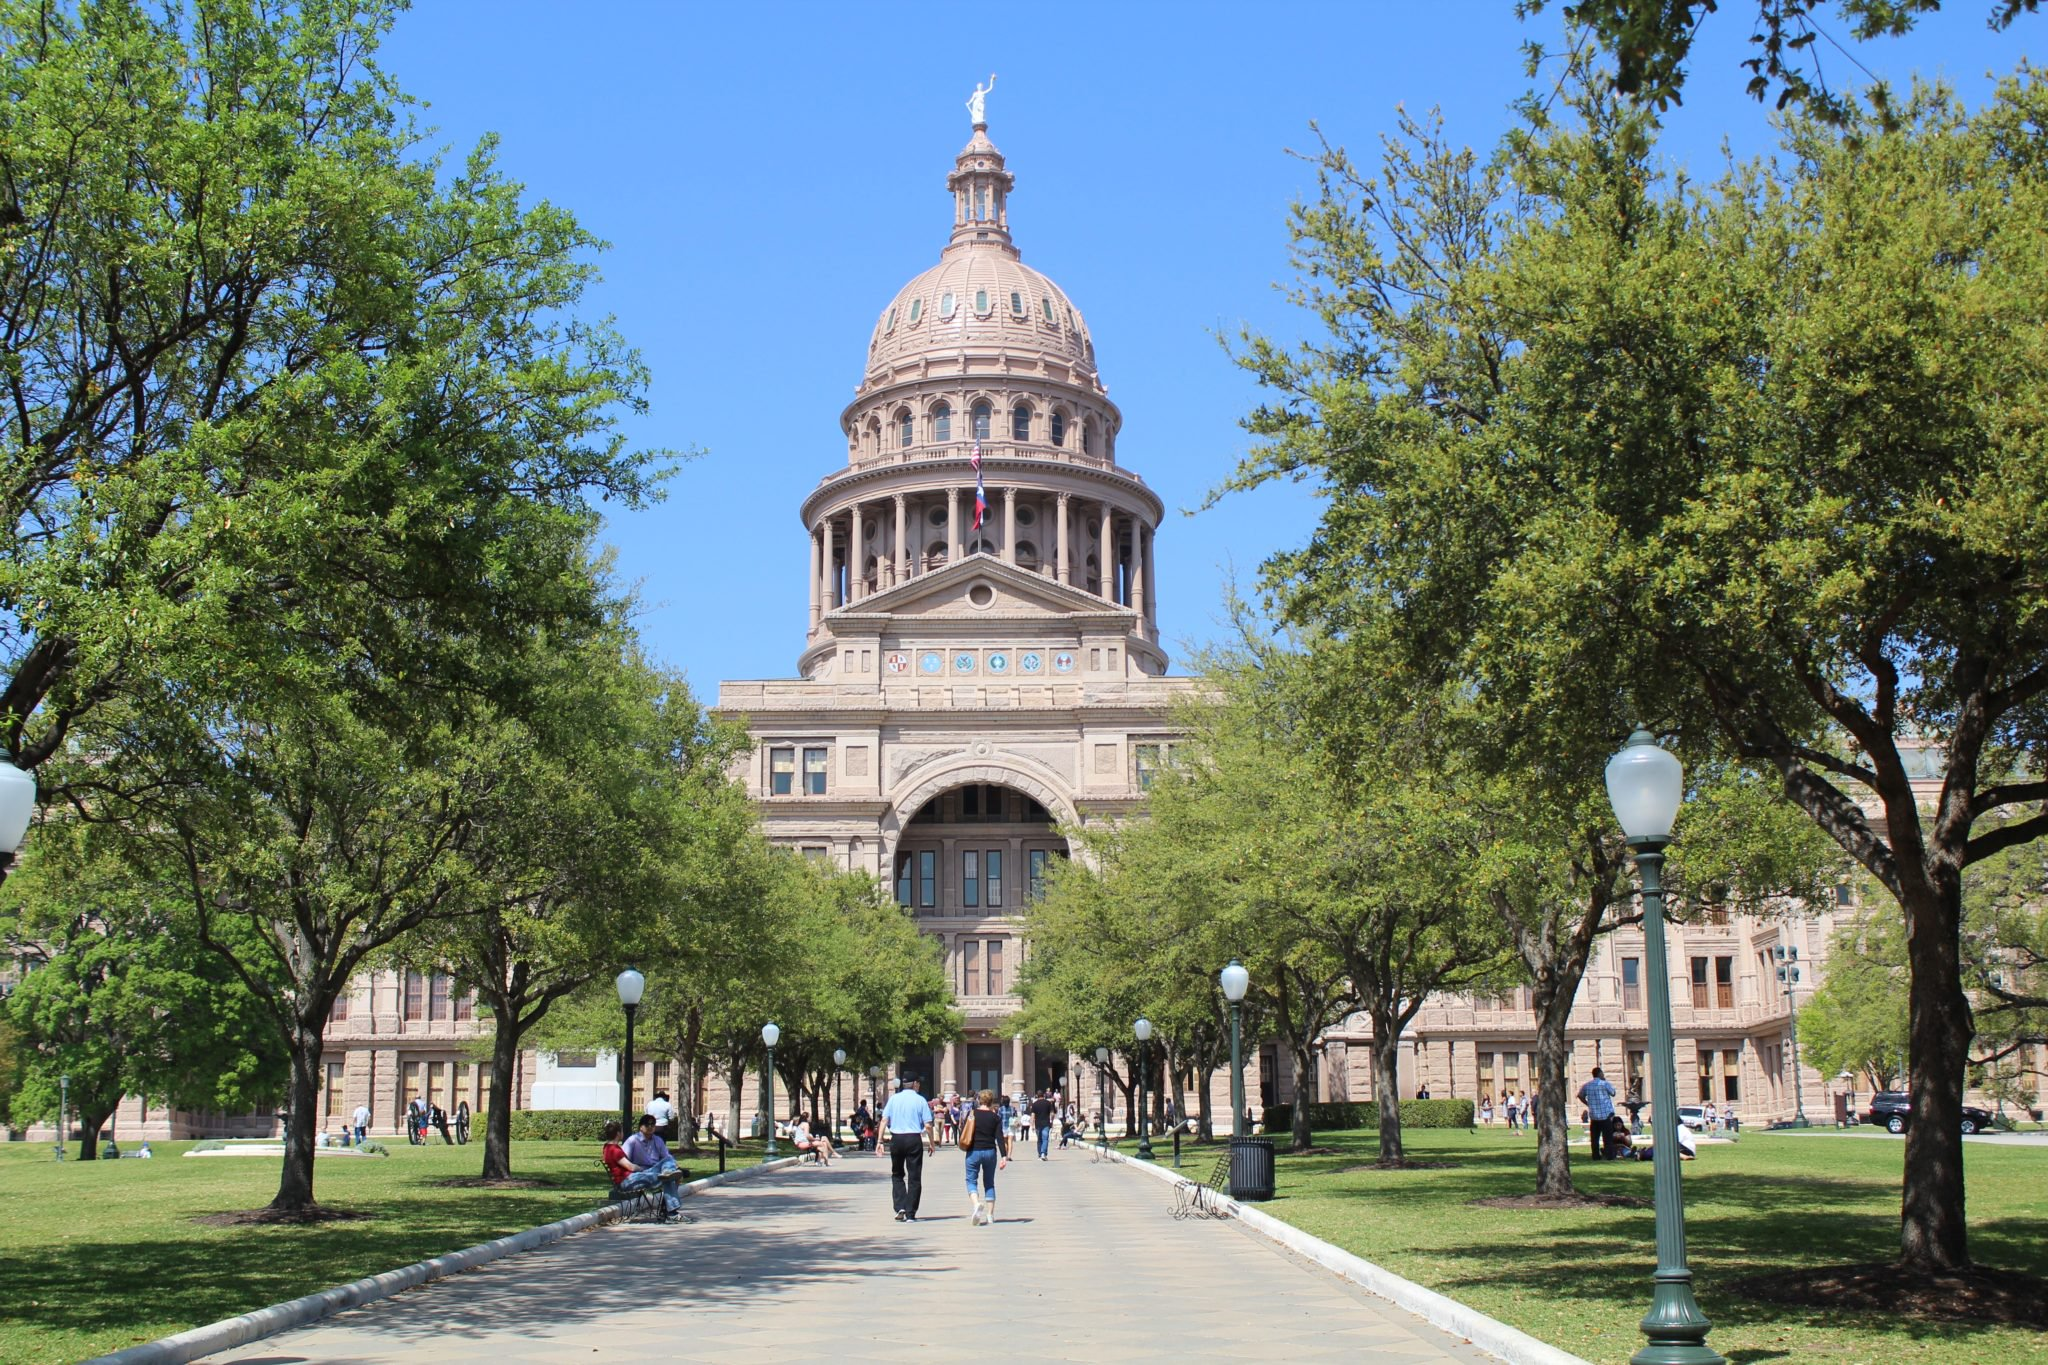 While the 2018 Farm Bill legalized industrial hemp, Texas still needs to reform its own